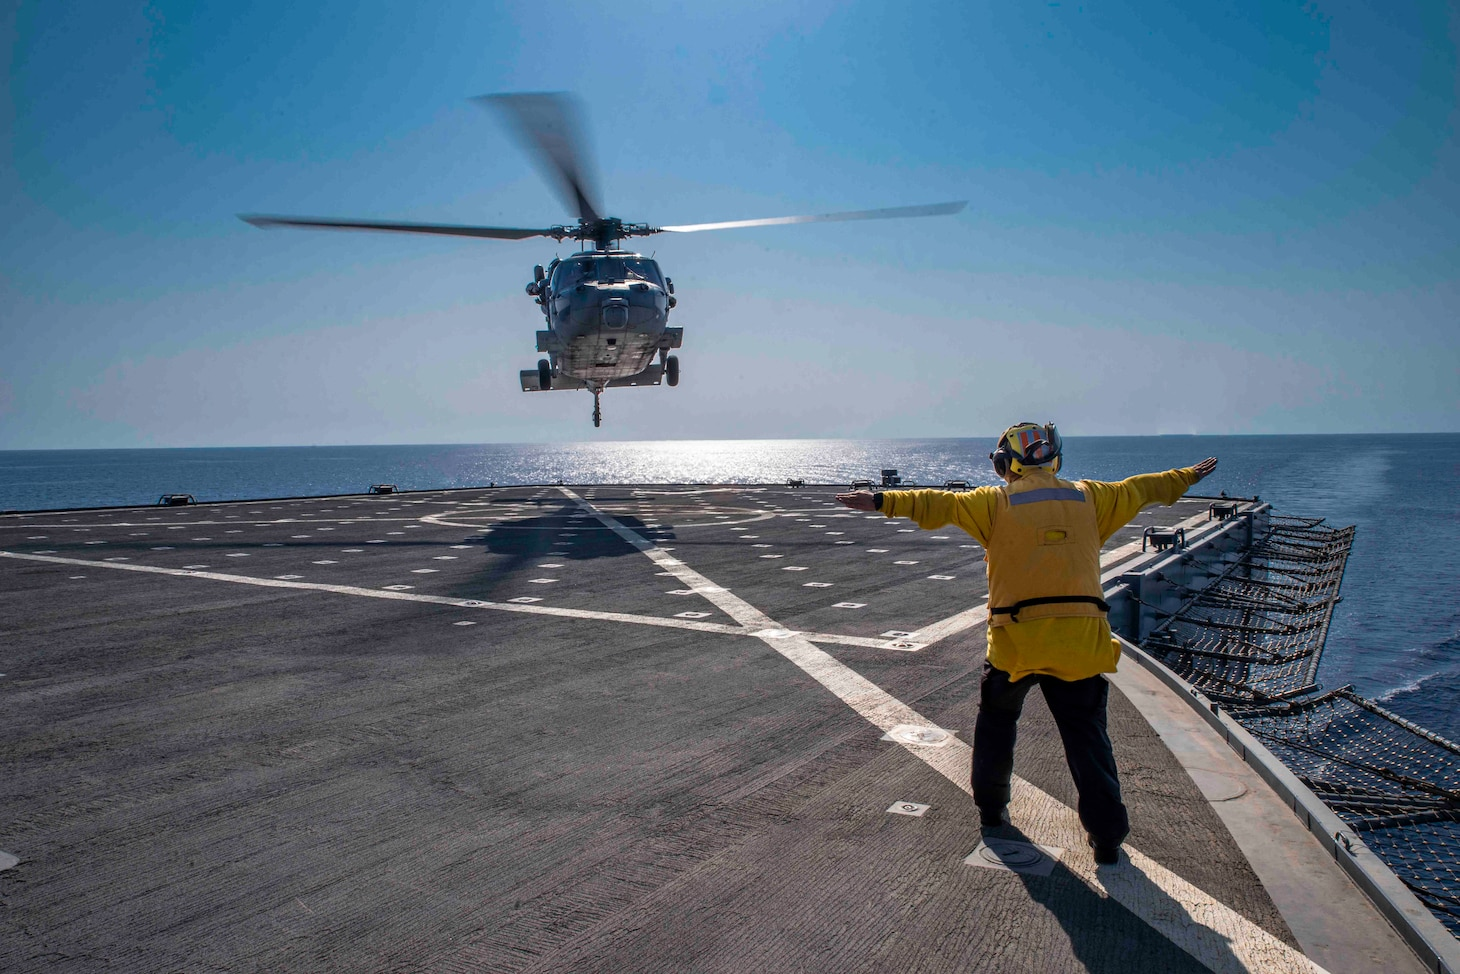 """A Military Sealift Command civil service mariner guides an MH-60 Sea Hawk helicopter attached to the """"Dragon Whales"""" of Helicopter Sea Combat Squadron (HSC) 28 to land aboard the Blue Ridge-class command and control ship USS Mount Whitney (LCC 20) while the ship conducts Large Scale Exercise 2021 in in Rota, Spain August 14, 2021."""